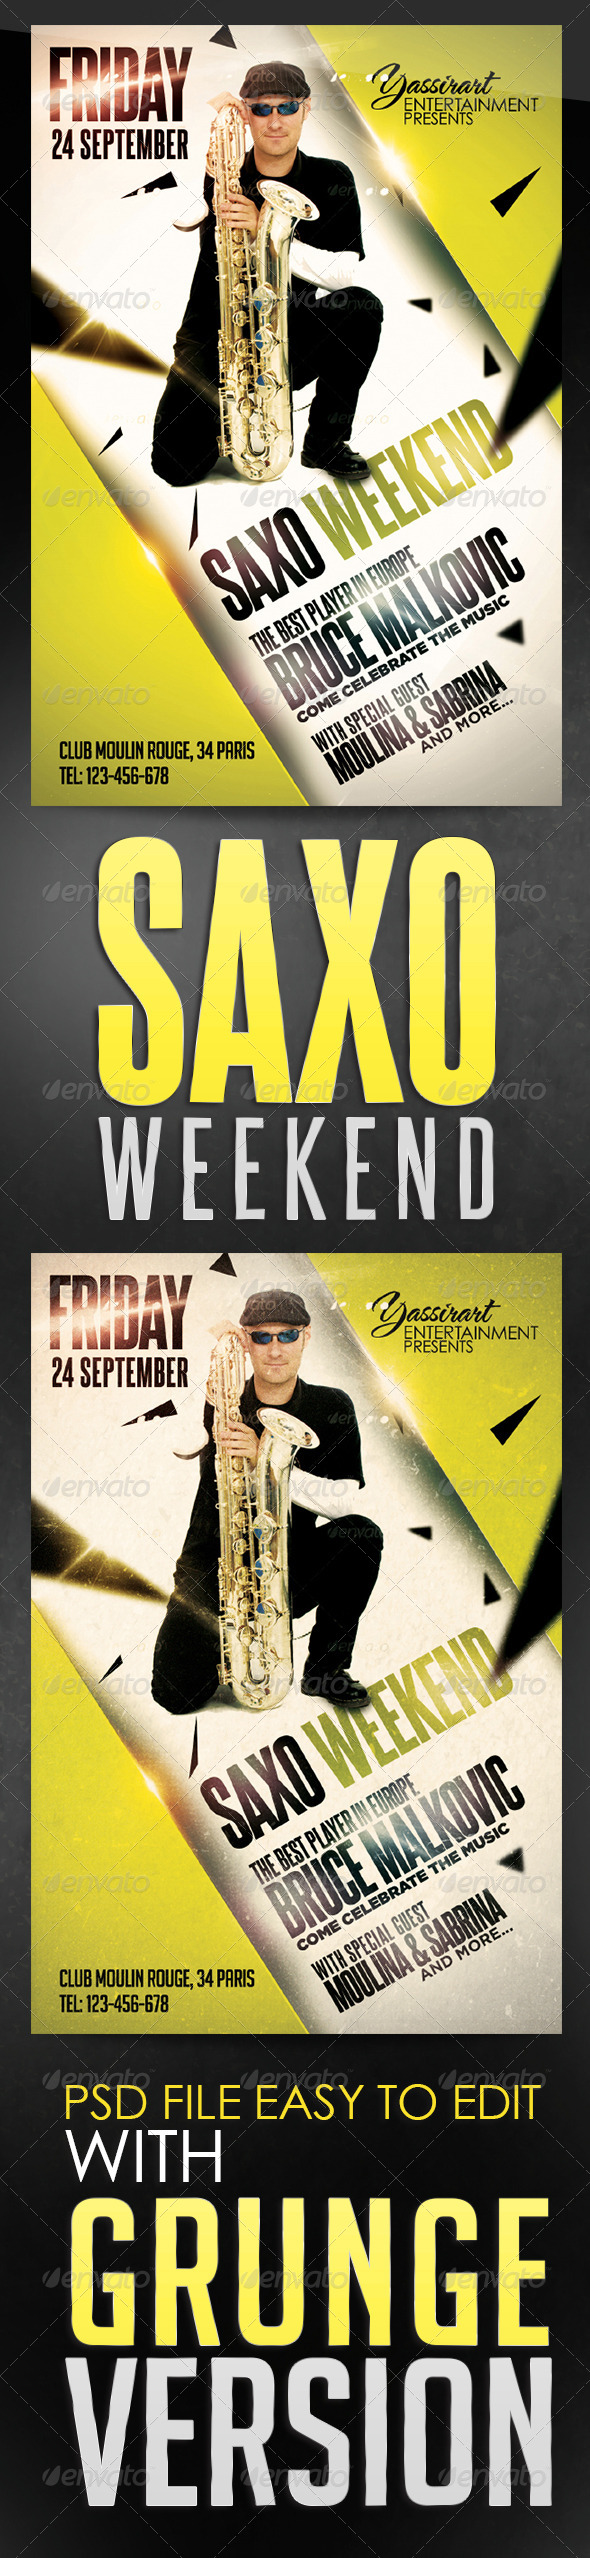 GraphicRiver Saxo Weekend Flyer Template 5750014